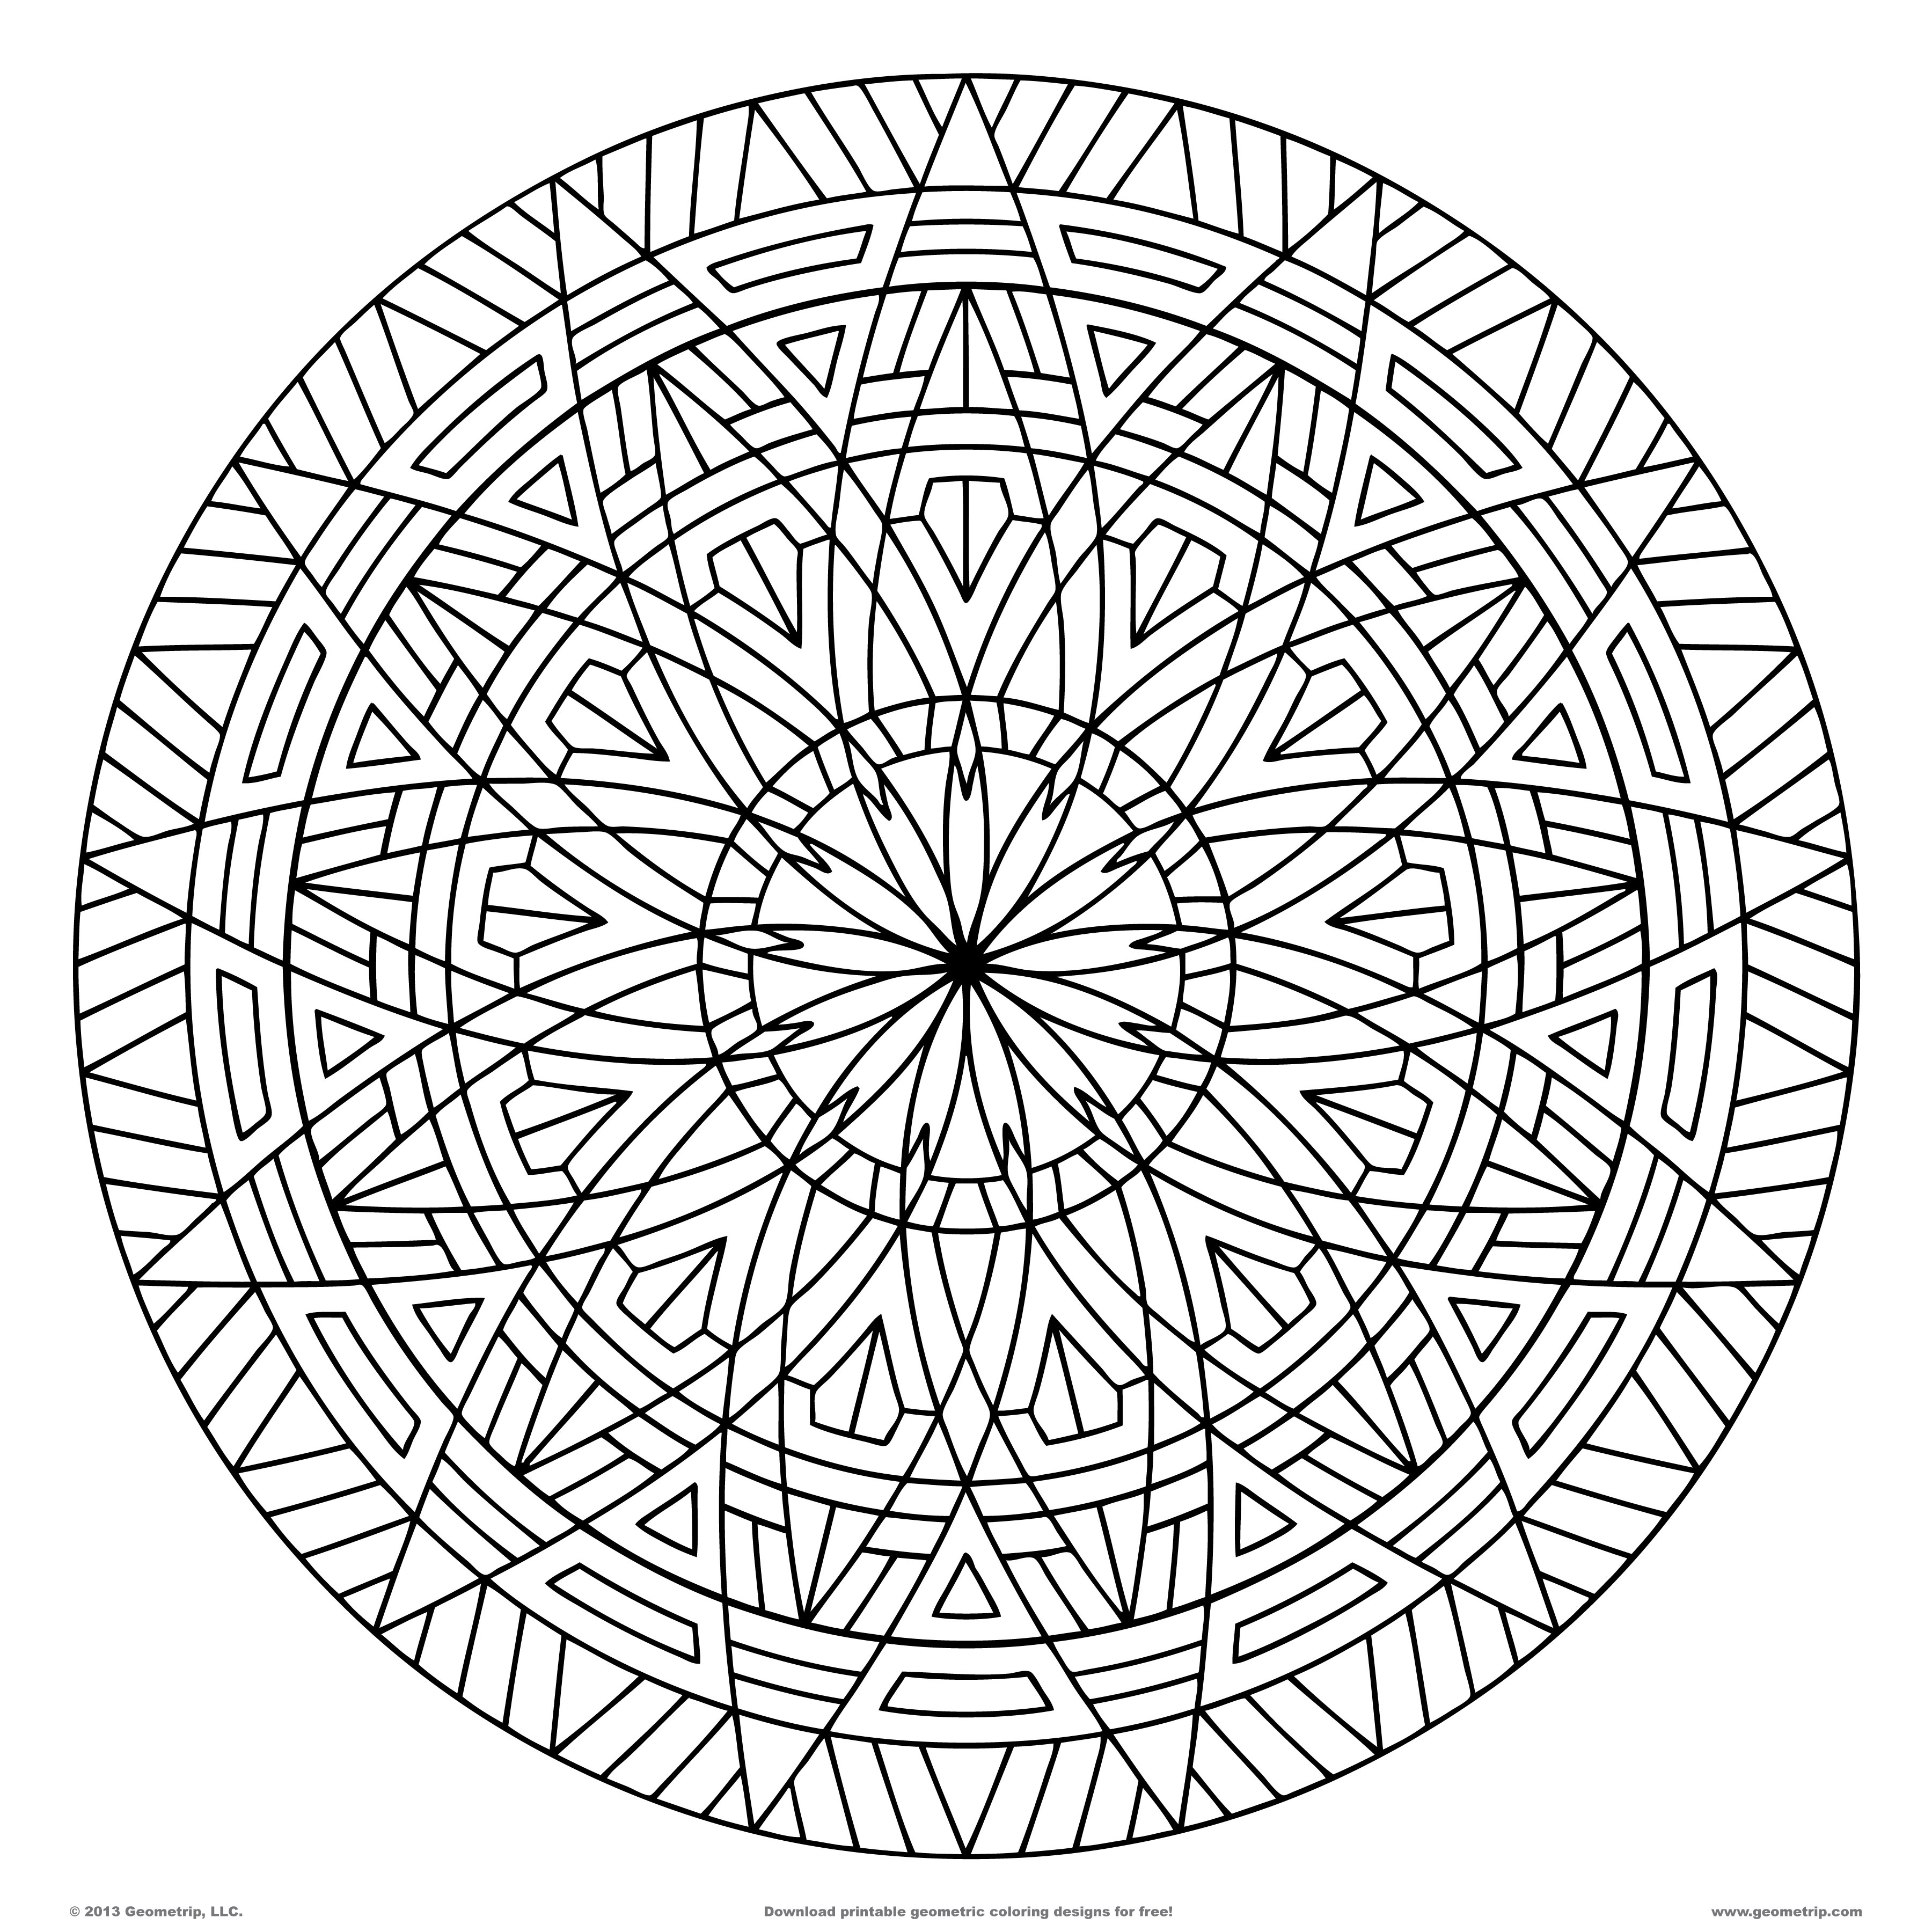 coloring pages of cool designs cool designs coloring pages coloring home designs cool of pages coloring